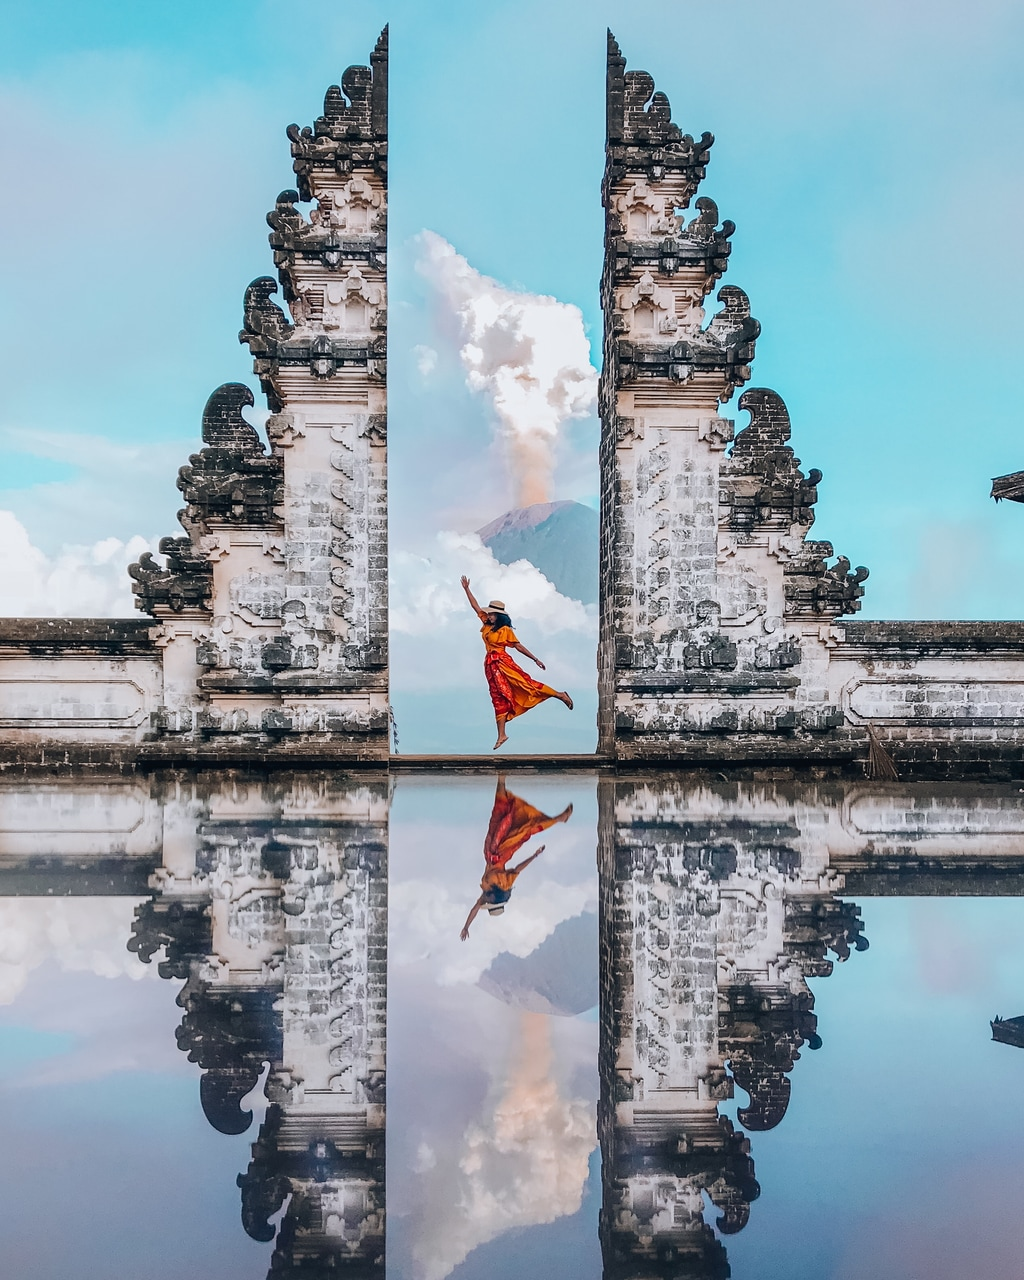 bali, asia, dance and temple